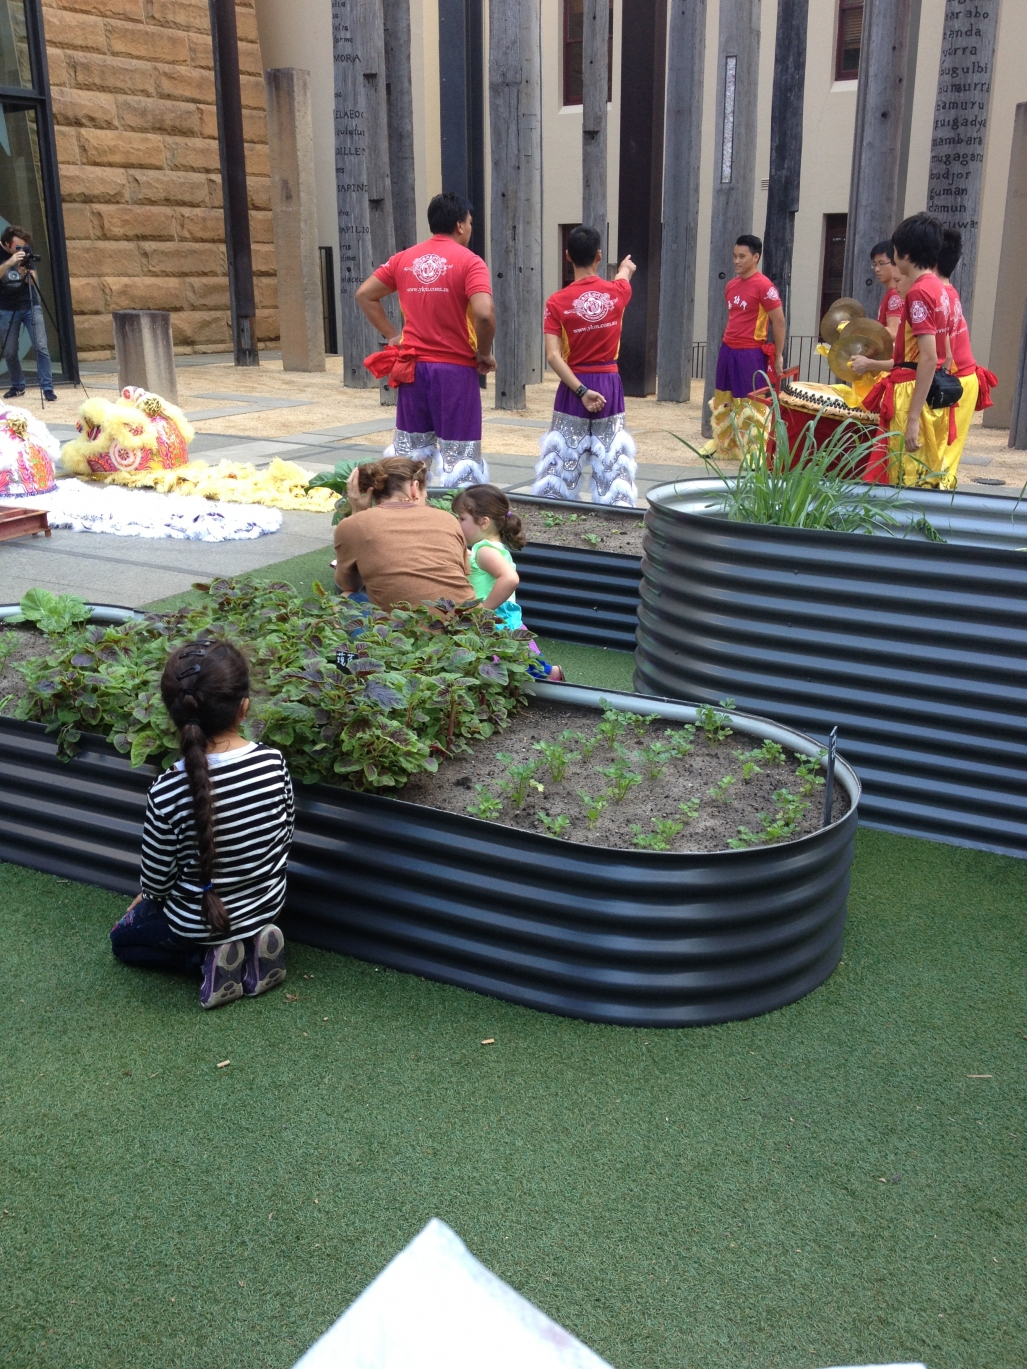 Activities on the forecourt